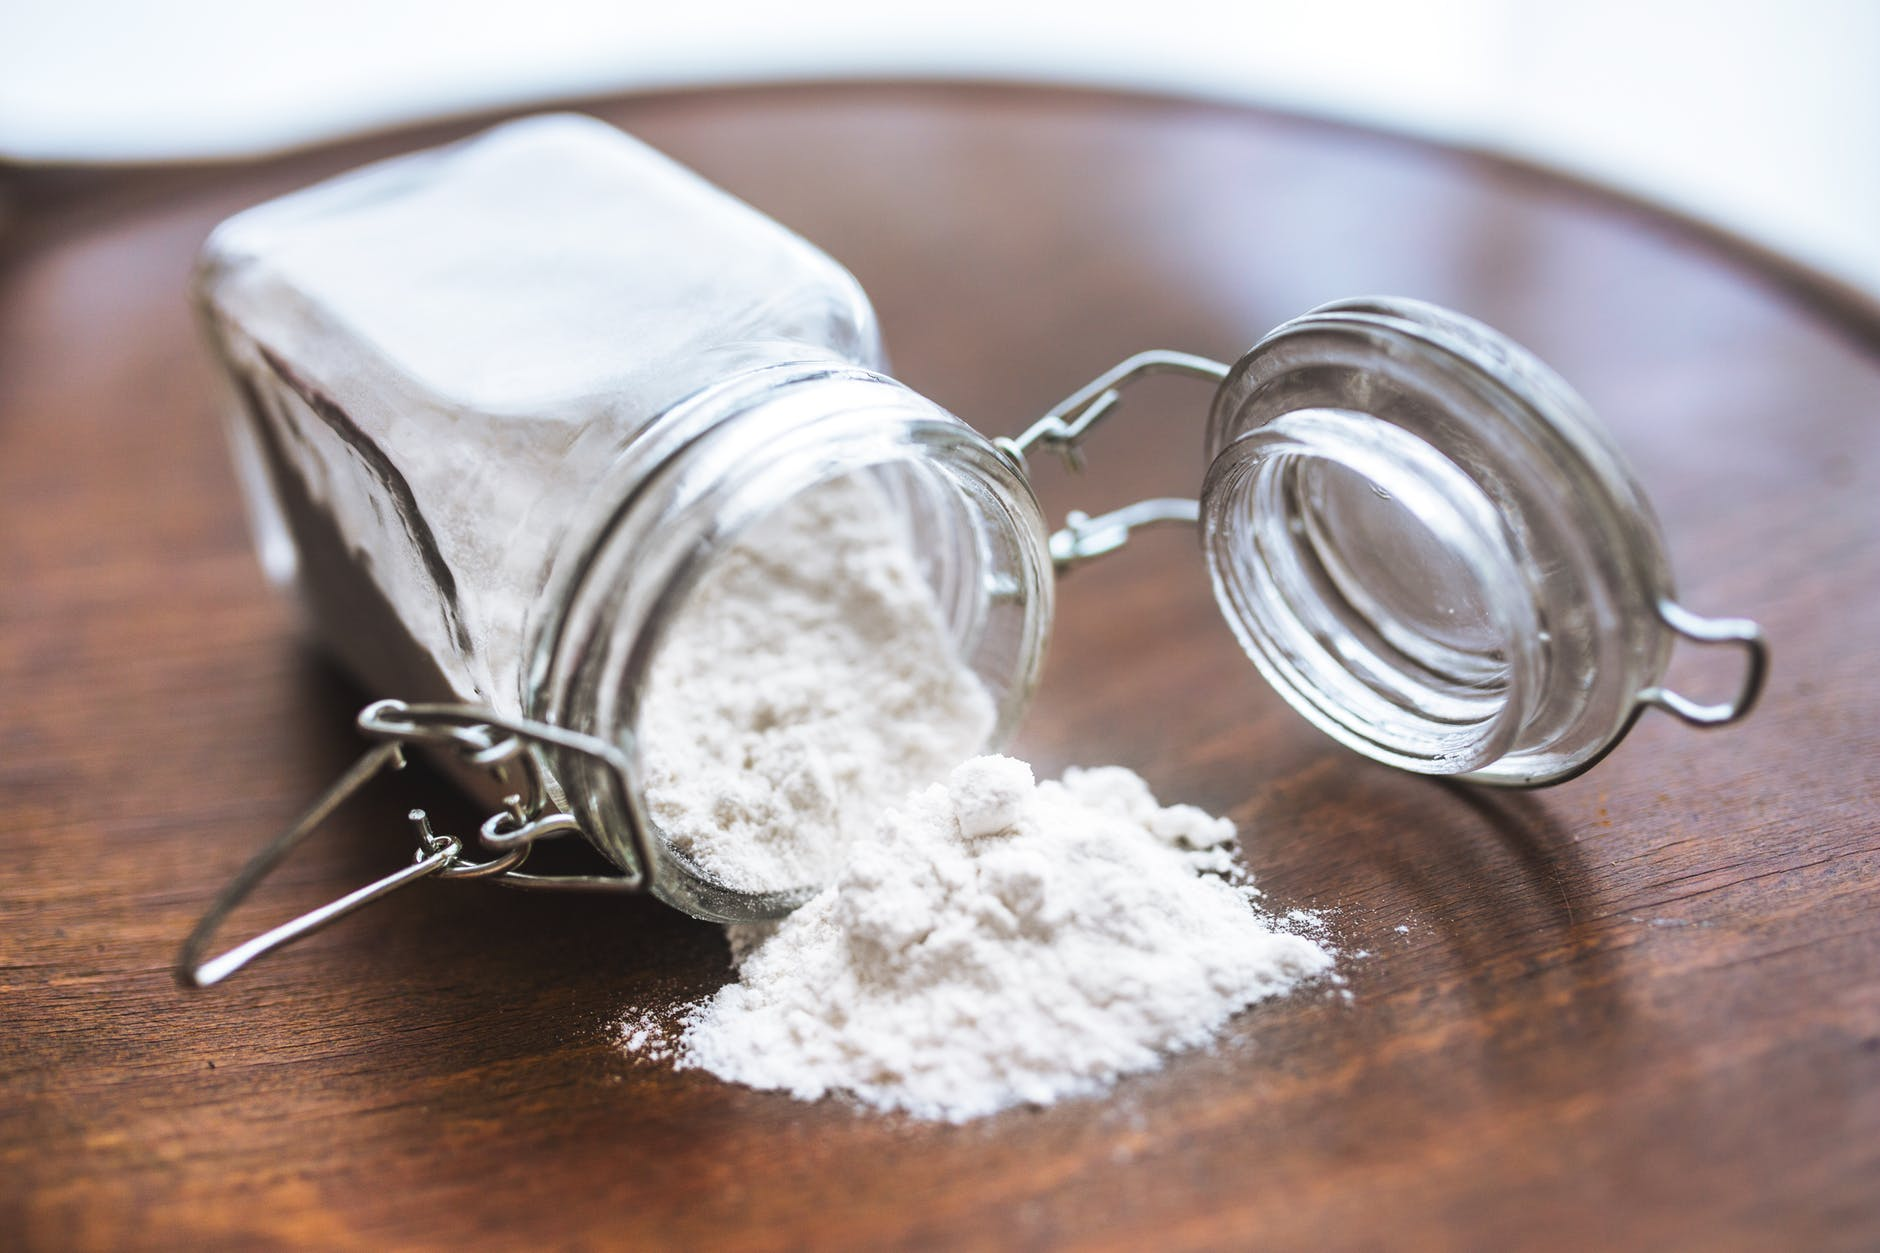 Flour, flour in a jar